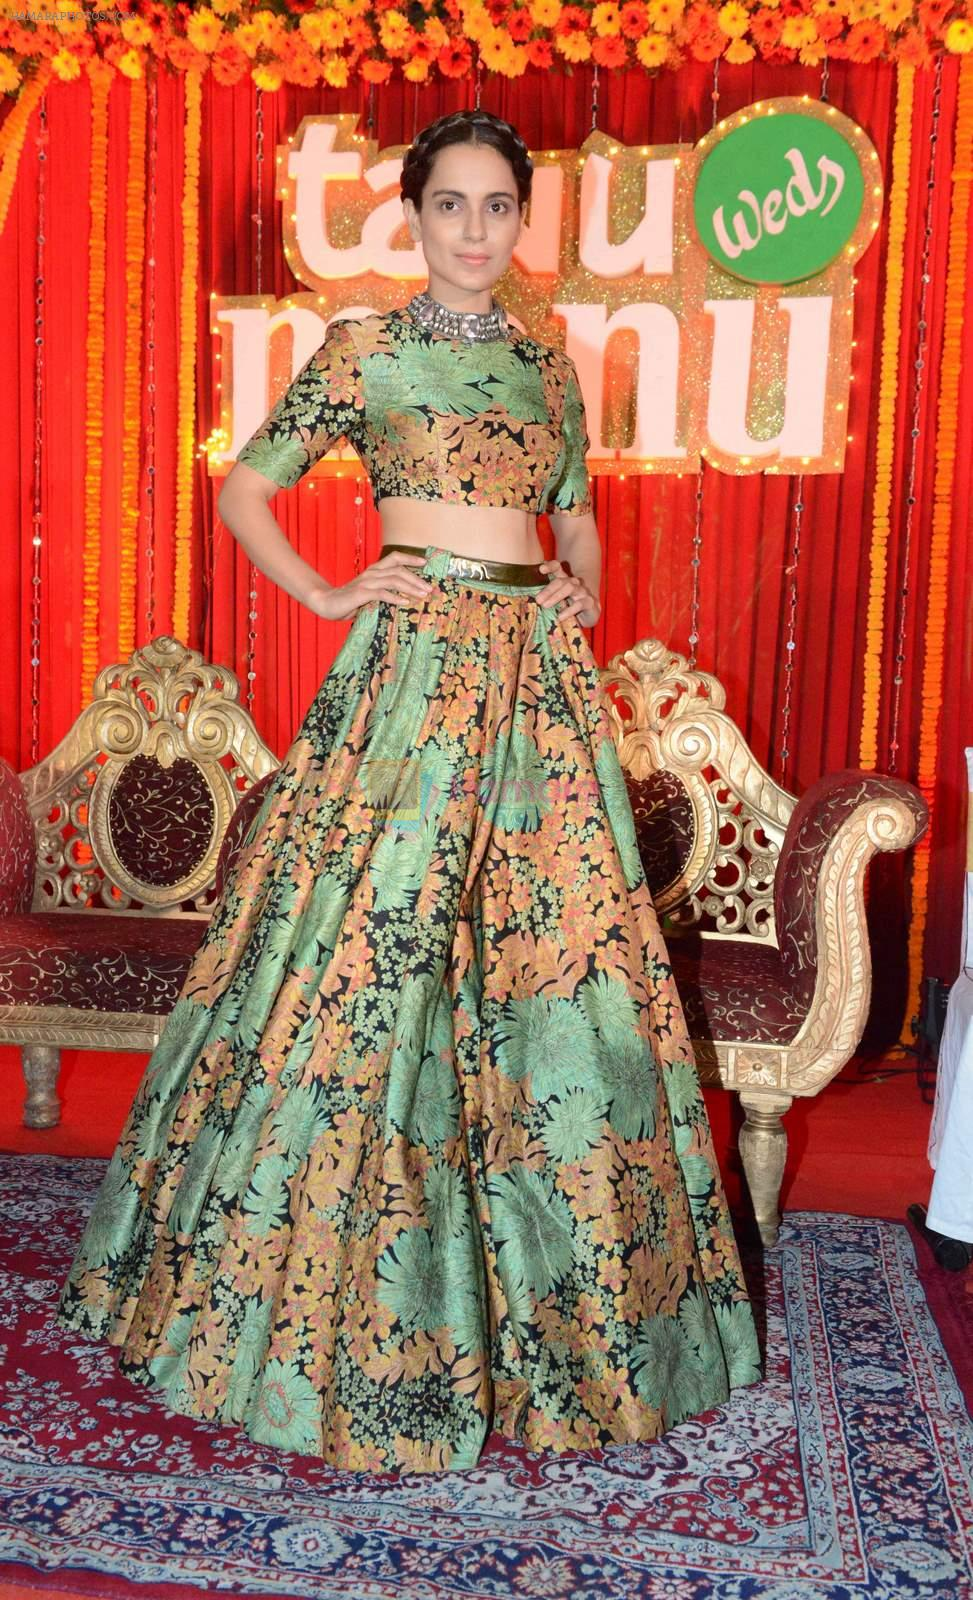 Kangana Ranaut at the press confrence & Poster launch of Flim Tanu Weds Manu Returns at Hotel Dusit Devrana in New Delhi on 23rd March 2015